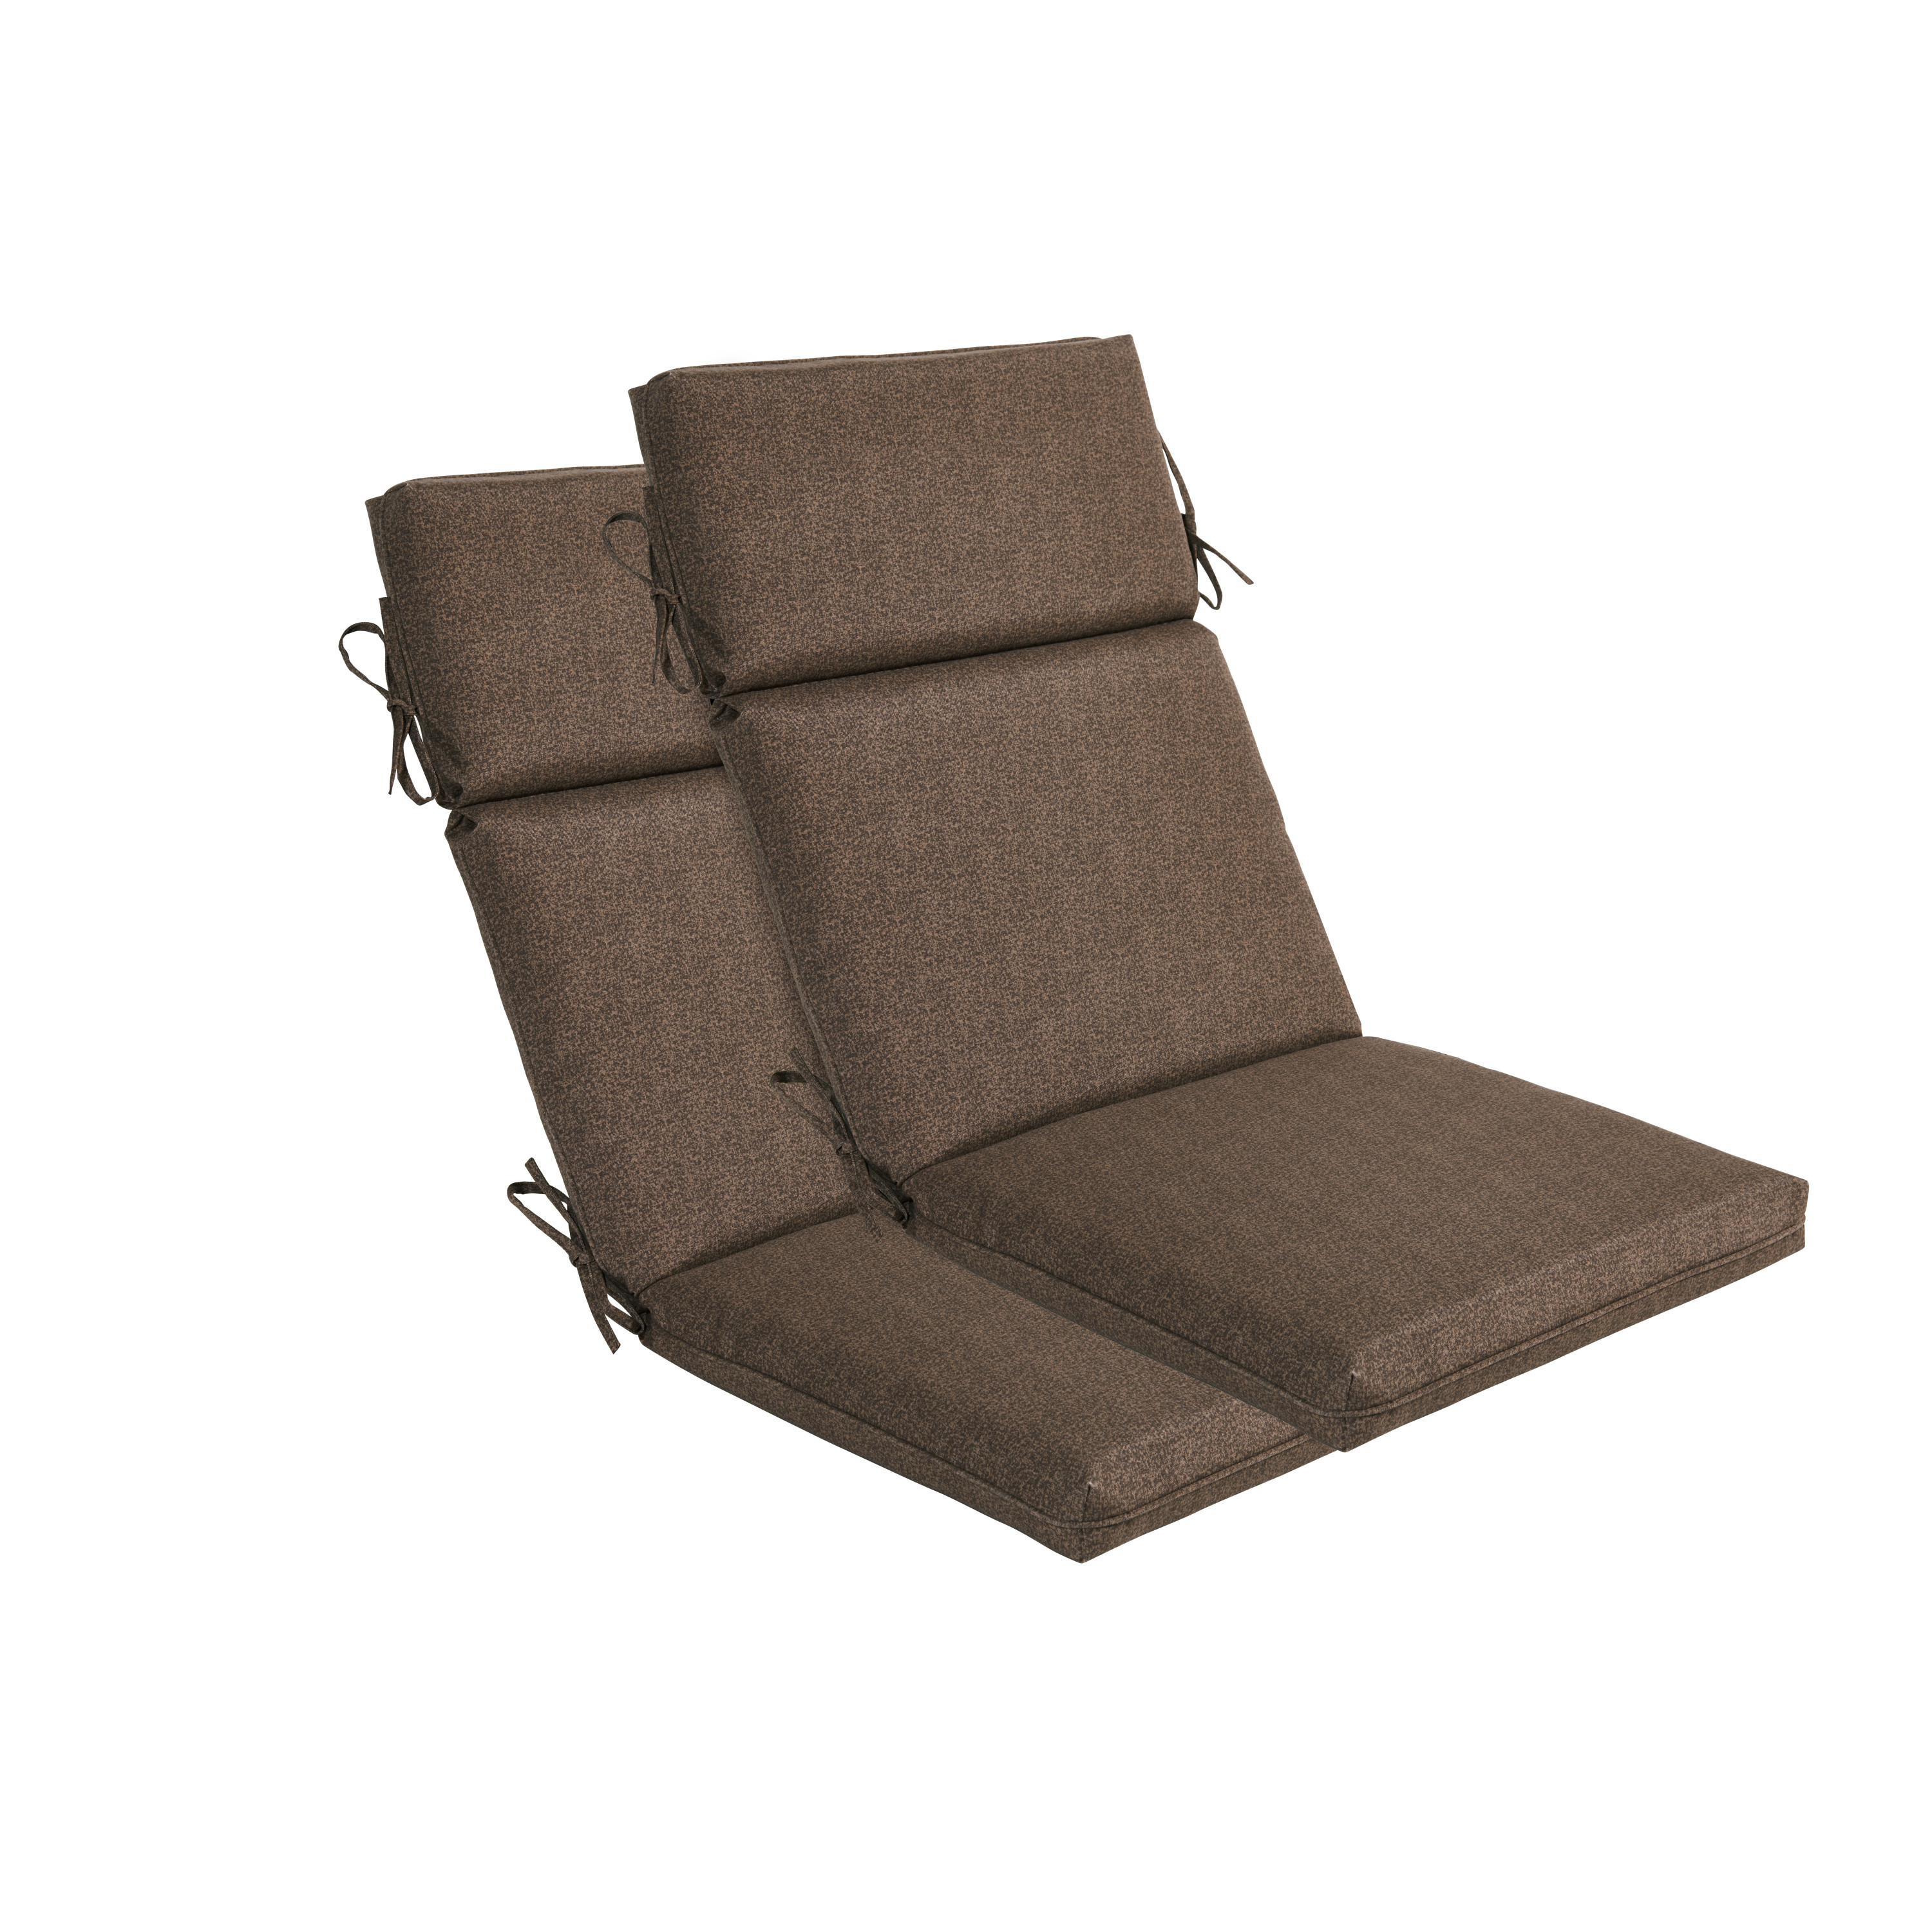 Best ideas about Lounge Chair Cushions . Save or Pin Bossima Outdoor Lounge Chair Cushion & Reviews Now.